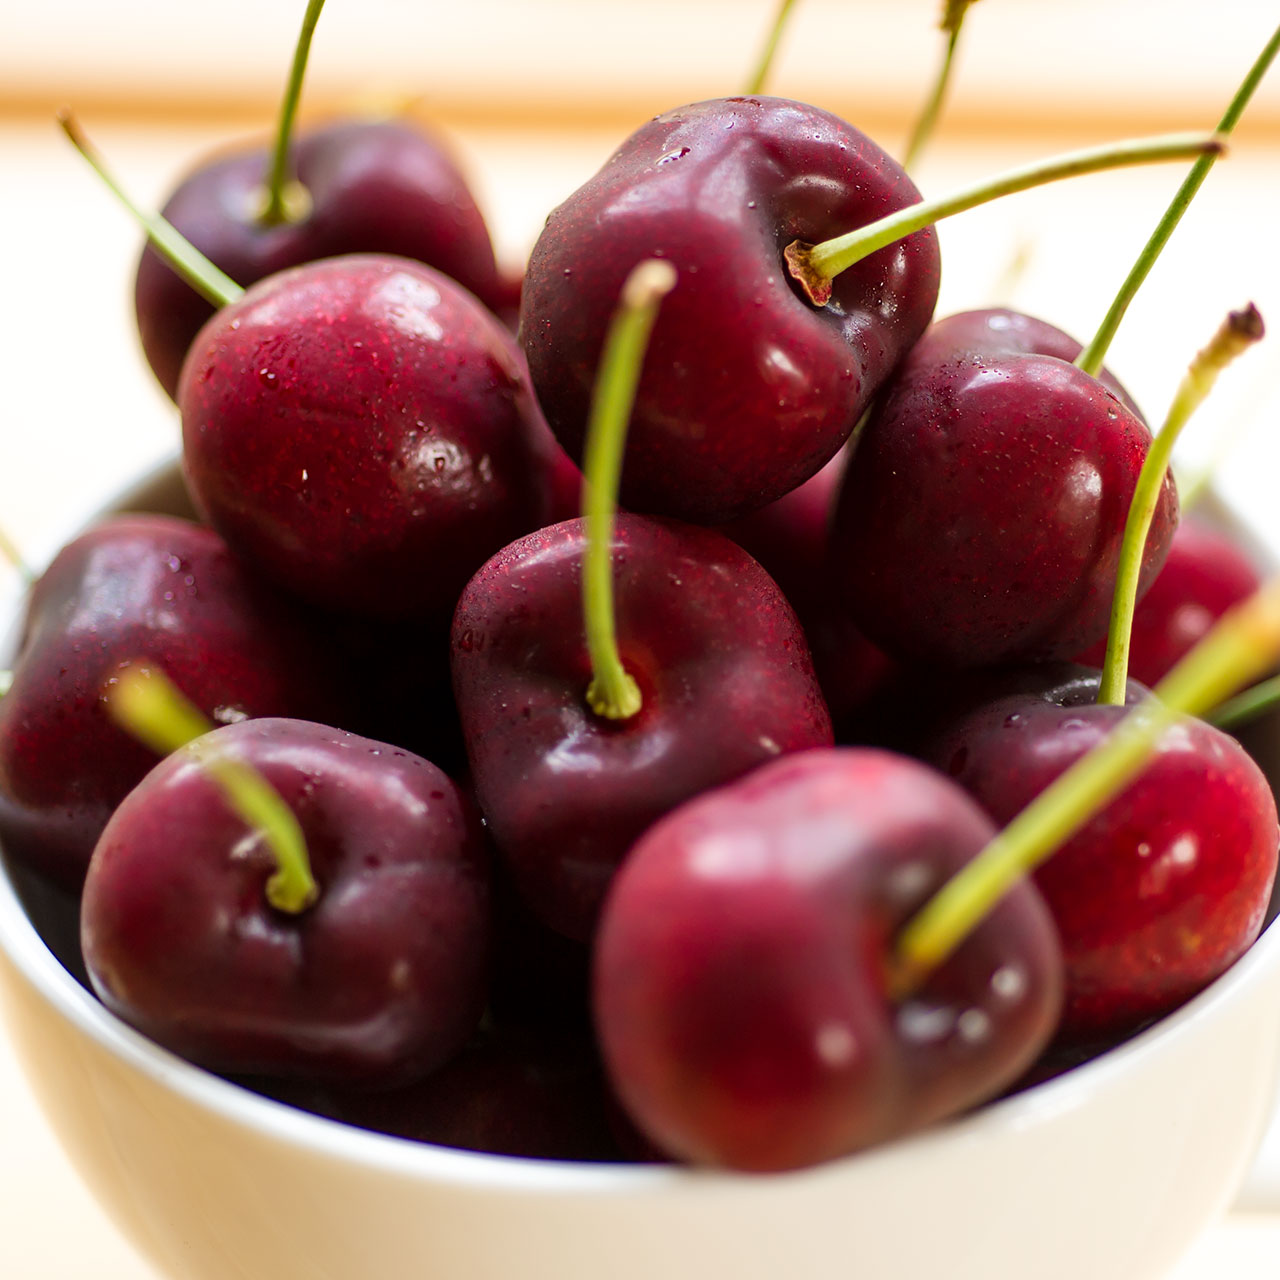 Cherries Season Image